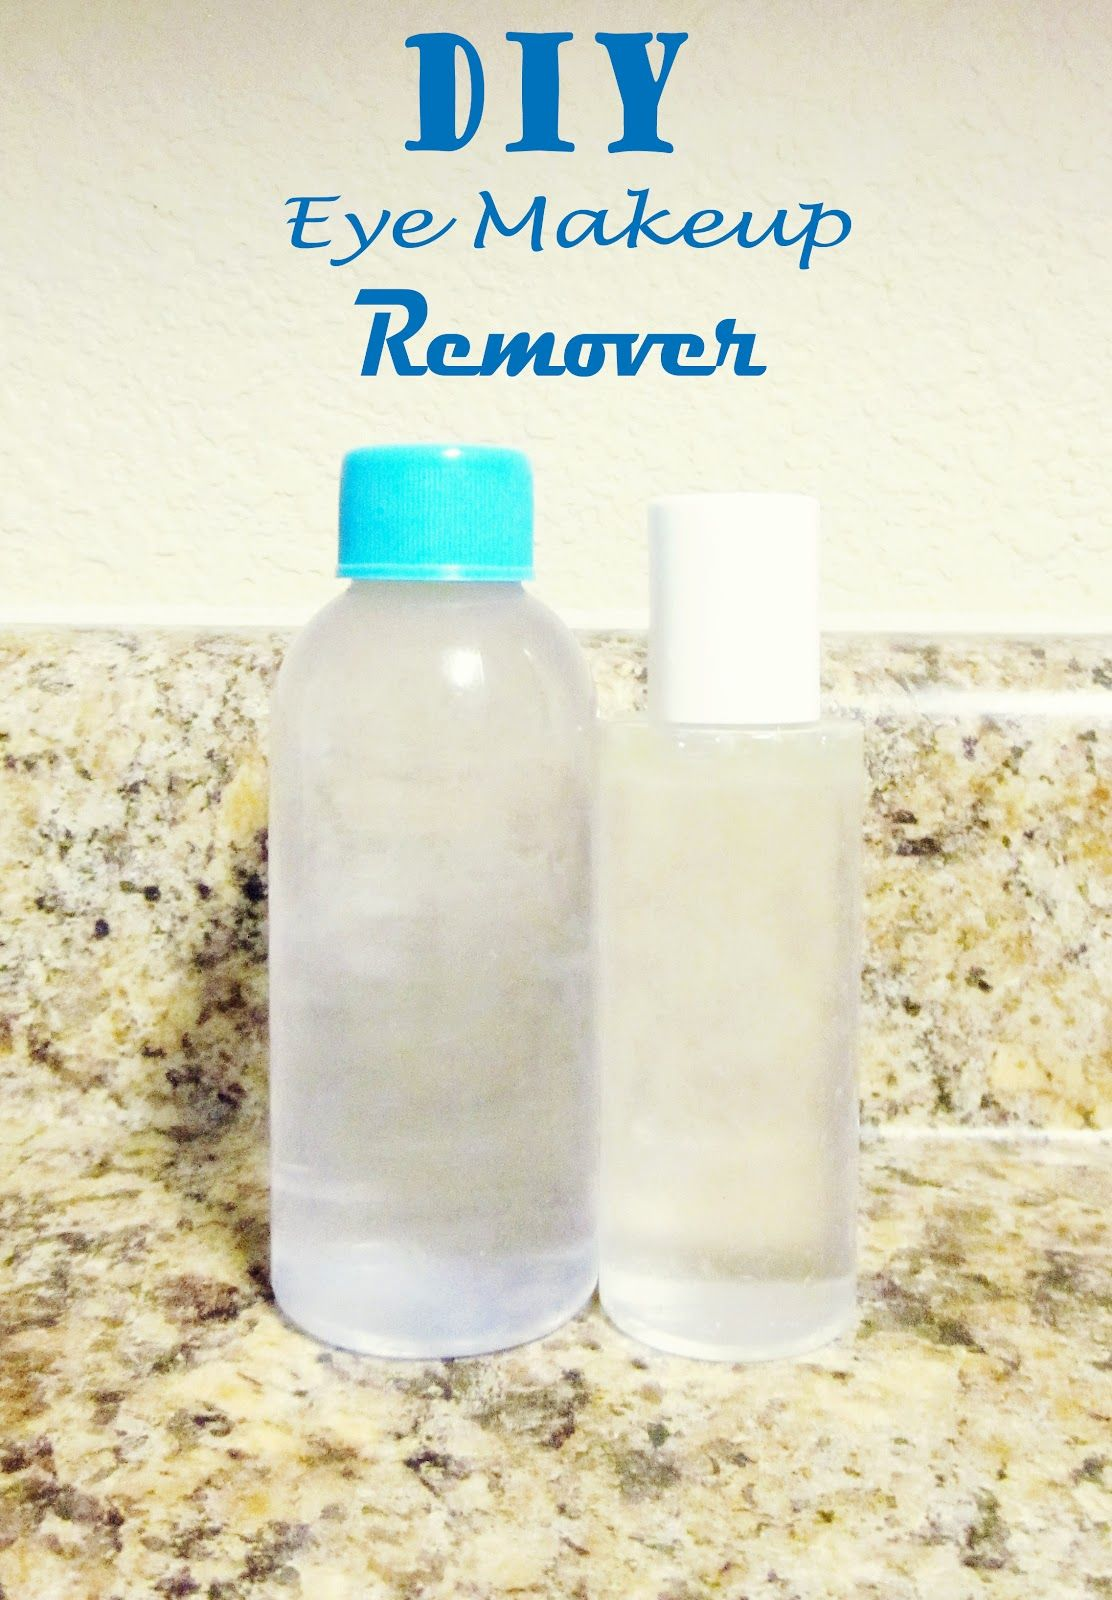 Easy DIY Eye Makeup Remover Diy makeup remover, Eye